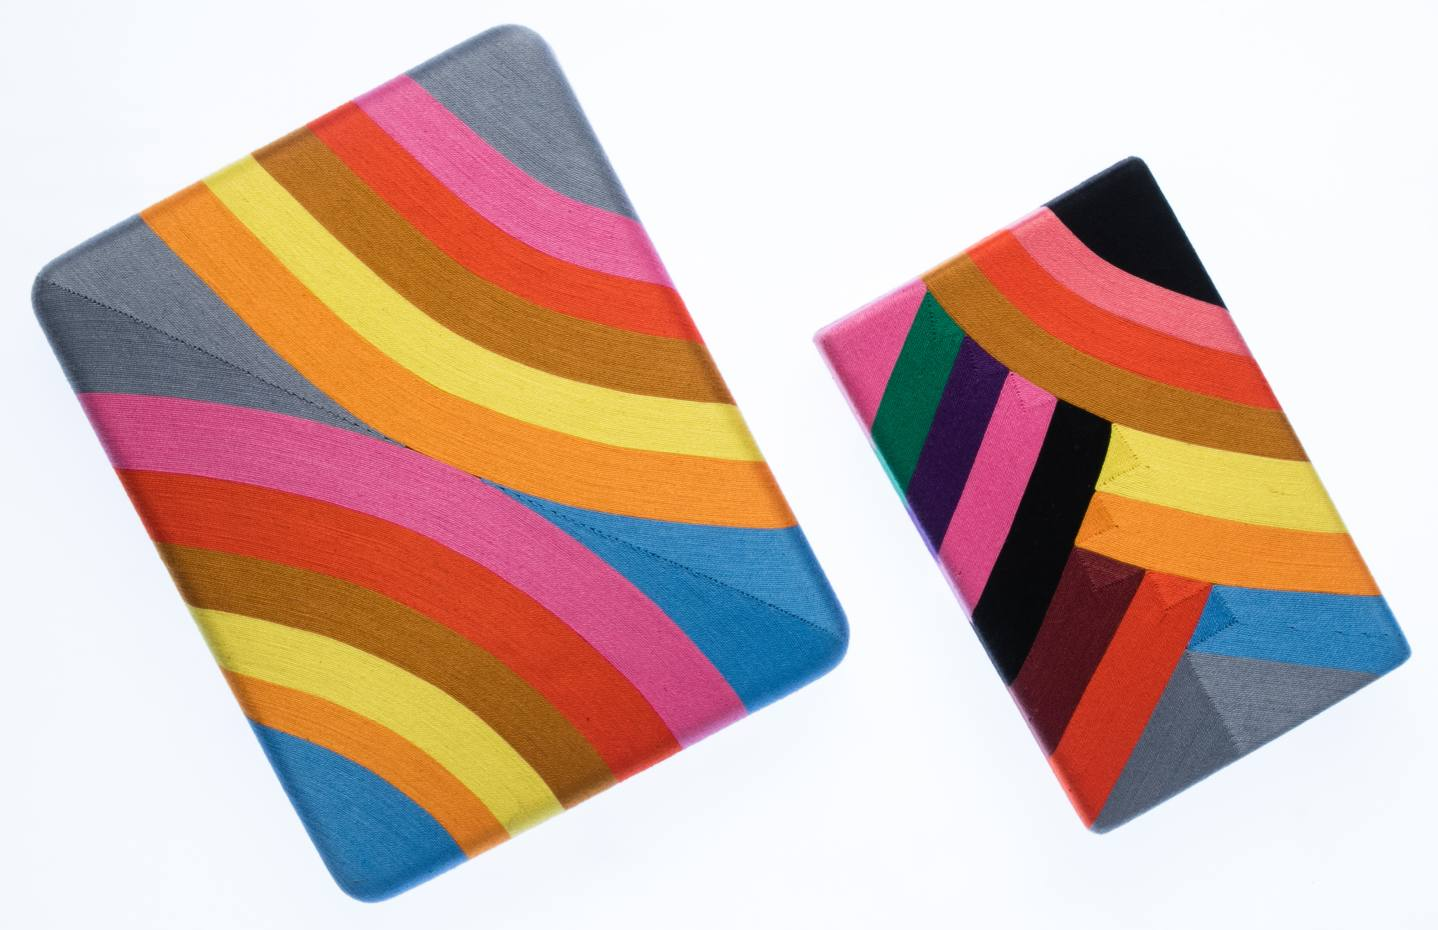 From left: Beatriz cotton Judith clutch, $300, and Marge clutch, $250